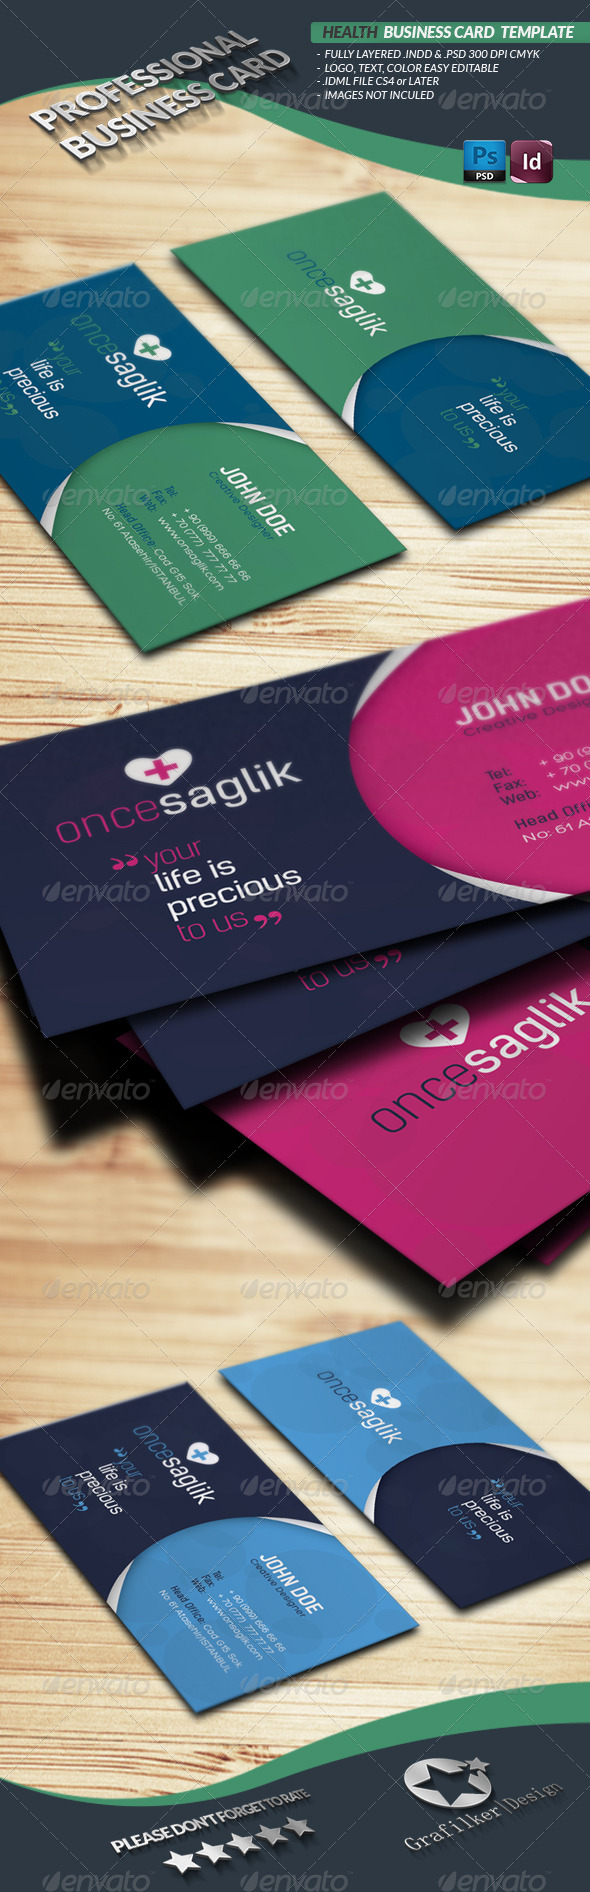 GraphicRiver Health Business Card Template 4493434